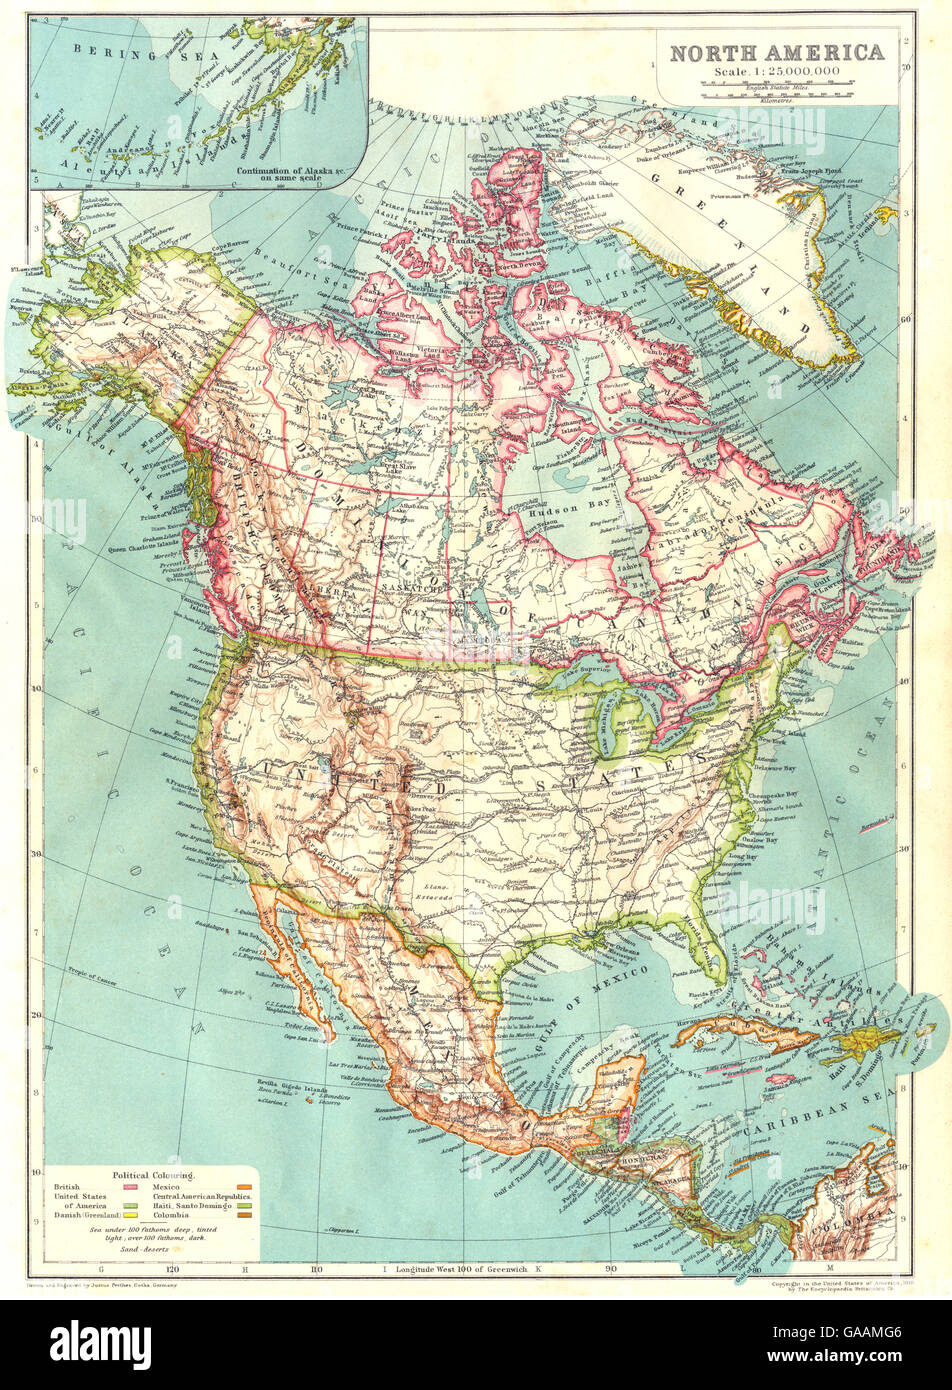 Maps Update 1309999 Map Usa and Mexico USA and Mexico map 73 – Map of Usa and Mexico